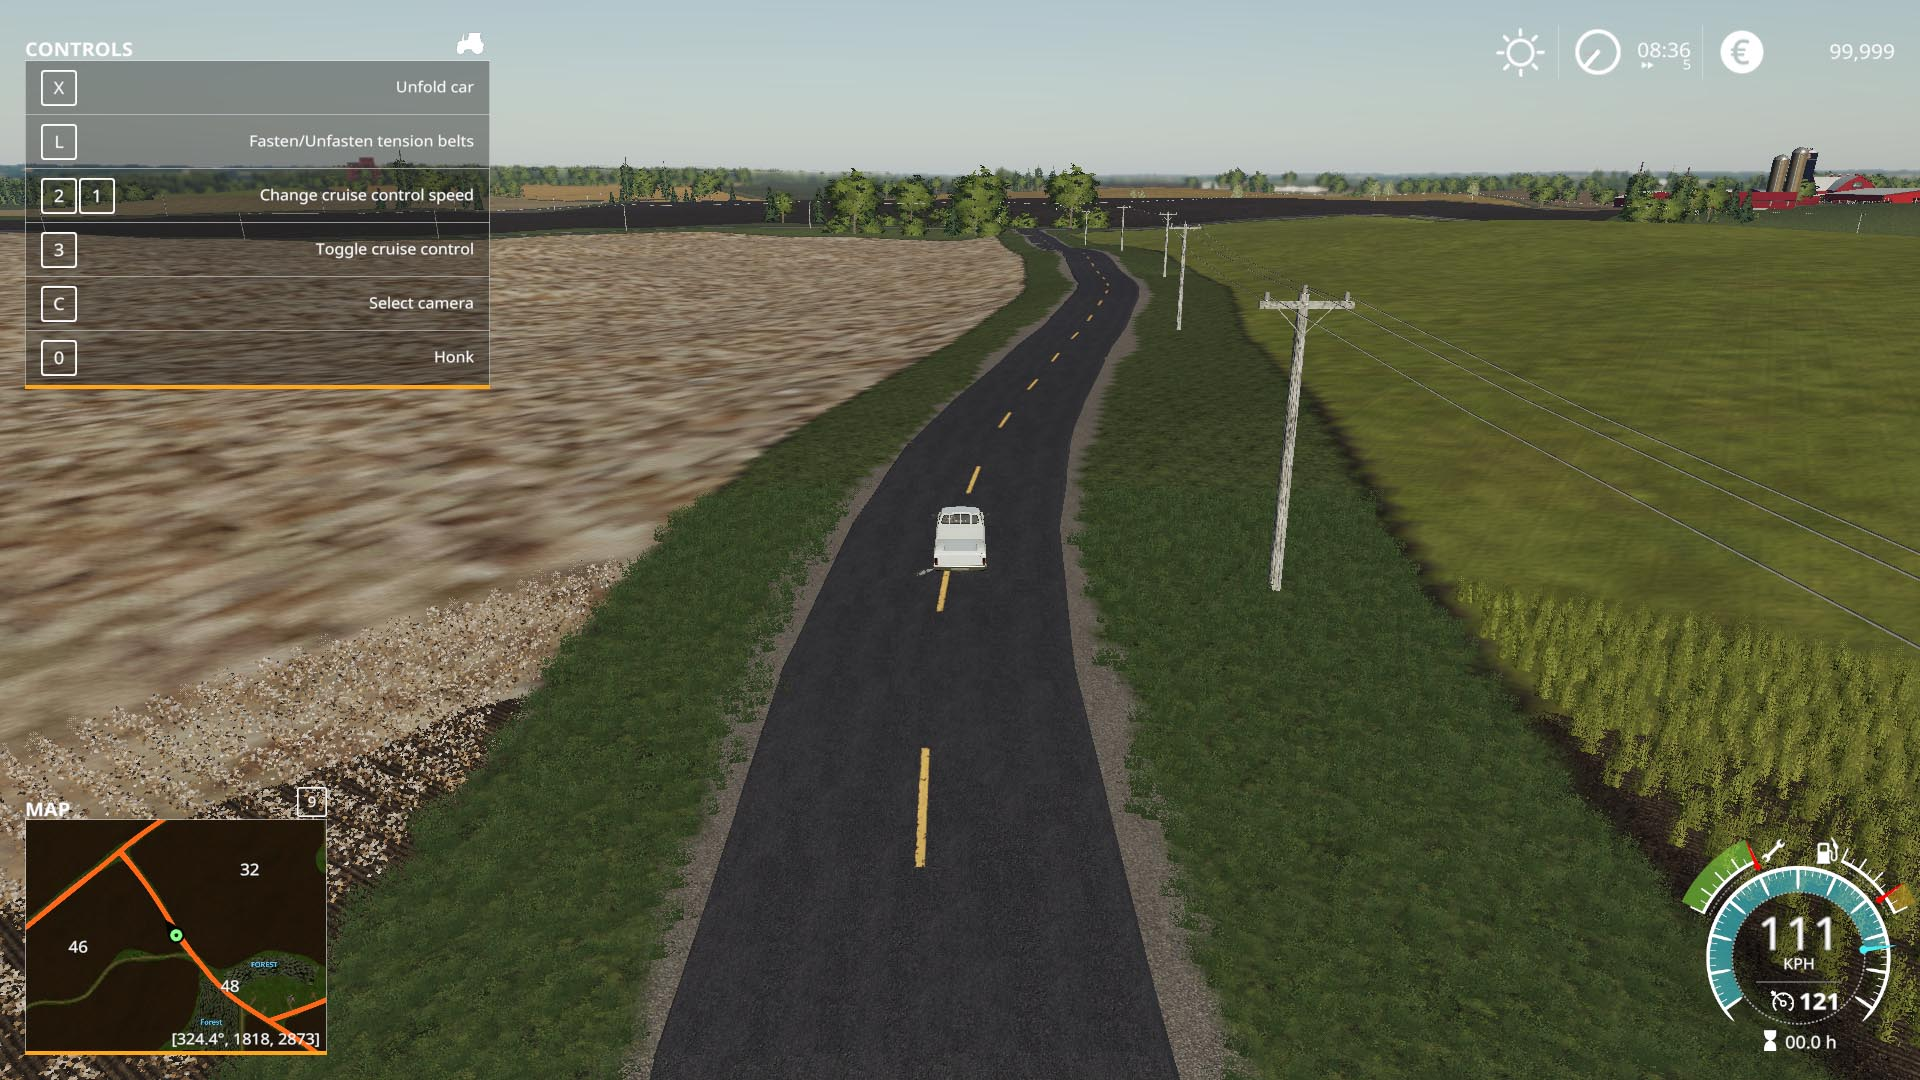 Clover Creak With Buy-Able Town For Mowing v 1.1